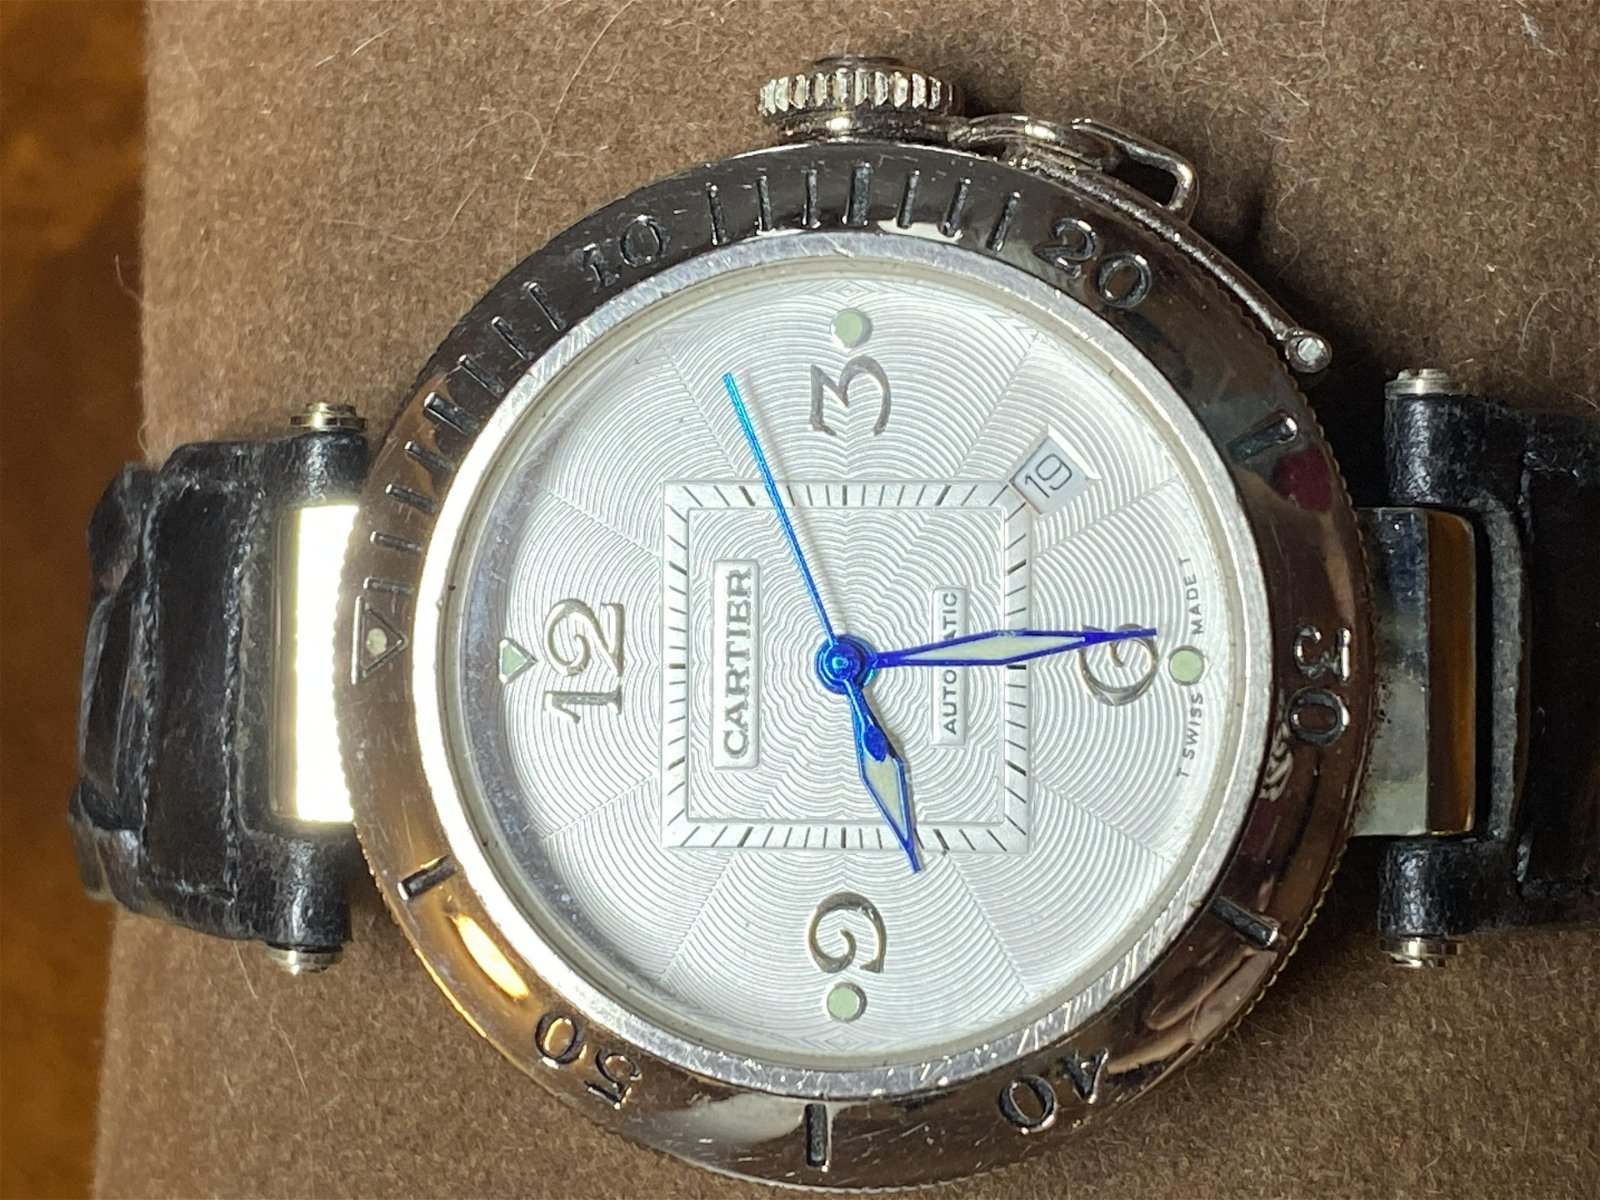 VINTAGE MENS CARTIER AUTOMATIC WATCH - UNAUTHENTICATED